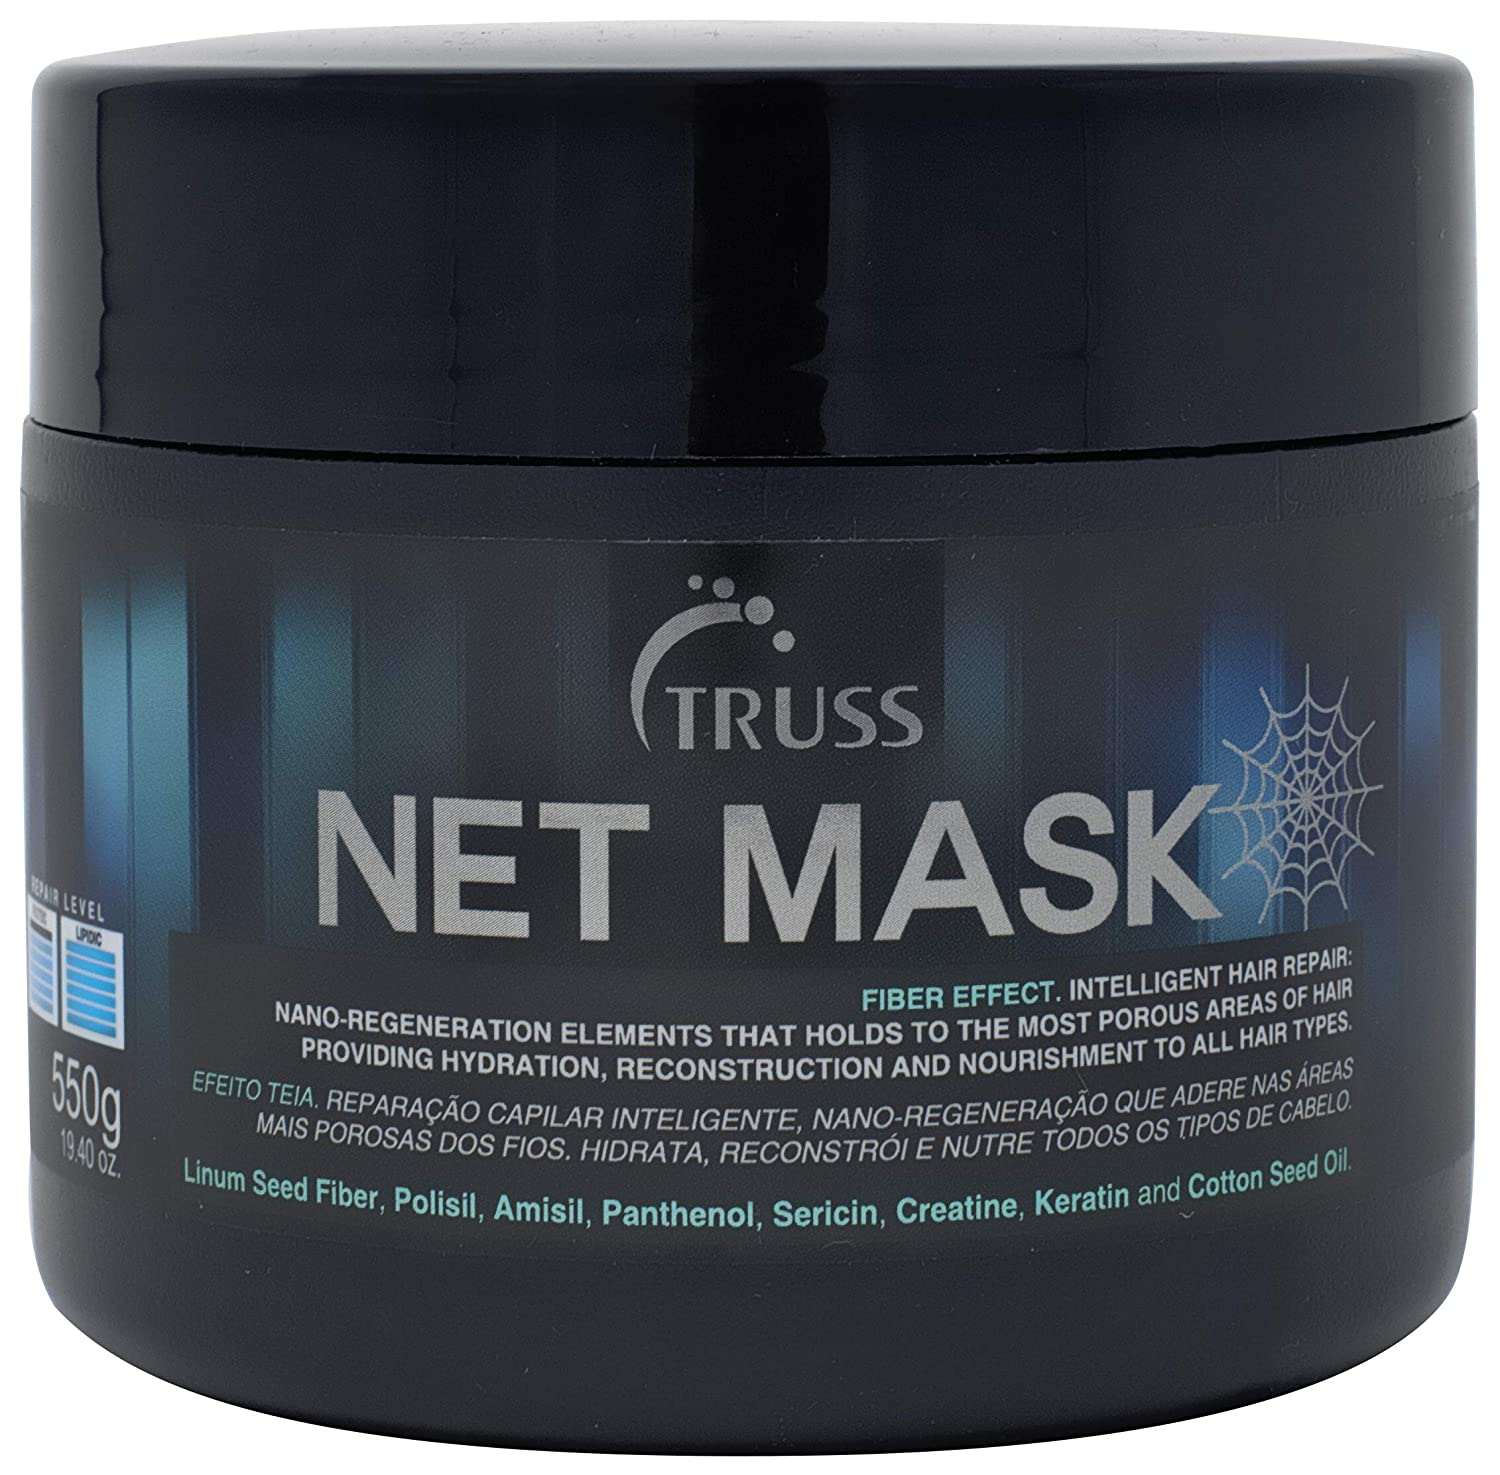 TRUSS Net Mask - Intensive Repair Mask for Curly Hair & All Other Hair Types - Nano Protein Infused, Anti-Static Hair Mask, Reconstructor, Detangler, Anti-Frizz, Repairs Damaged Hair, Hydrates Curls